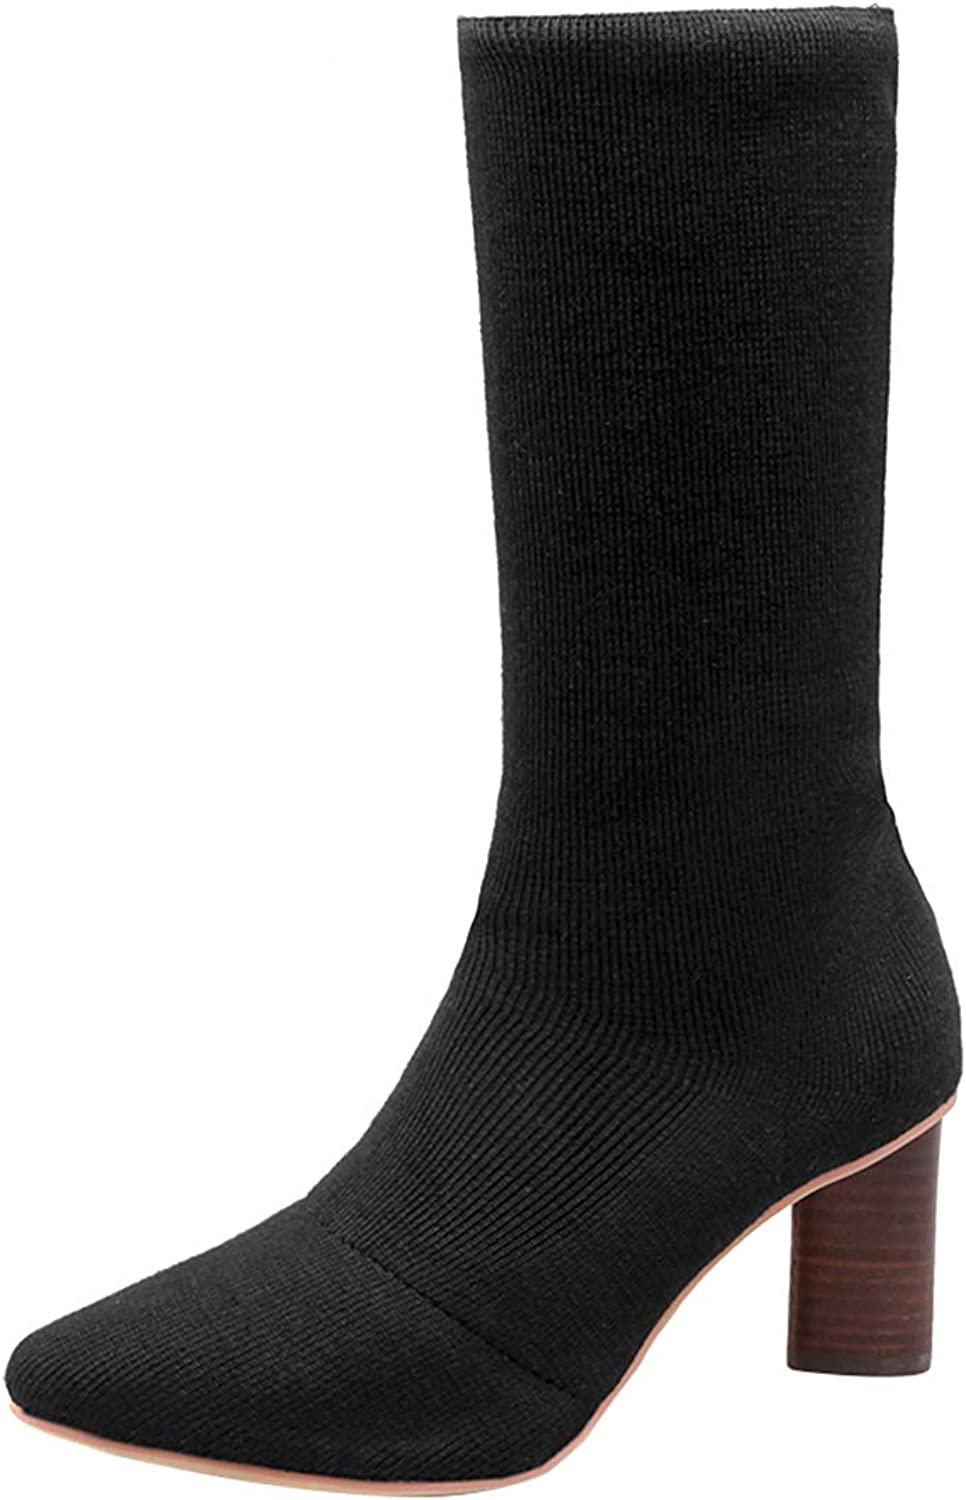 Jushee Womens Juguilt 7 cm mid-Heel Mid-Calf Pull-on Synthetic Boots